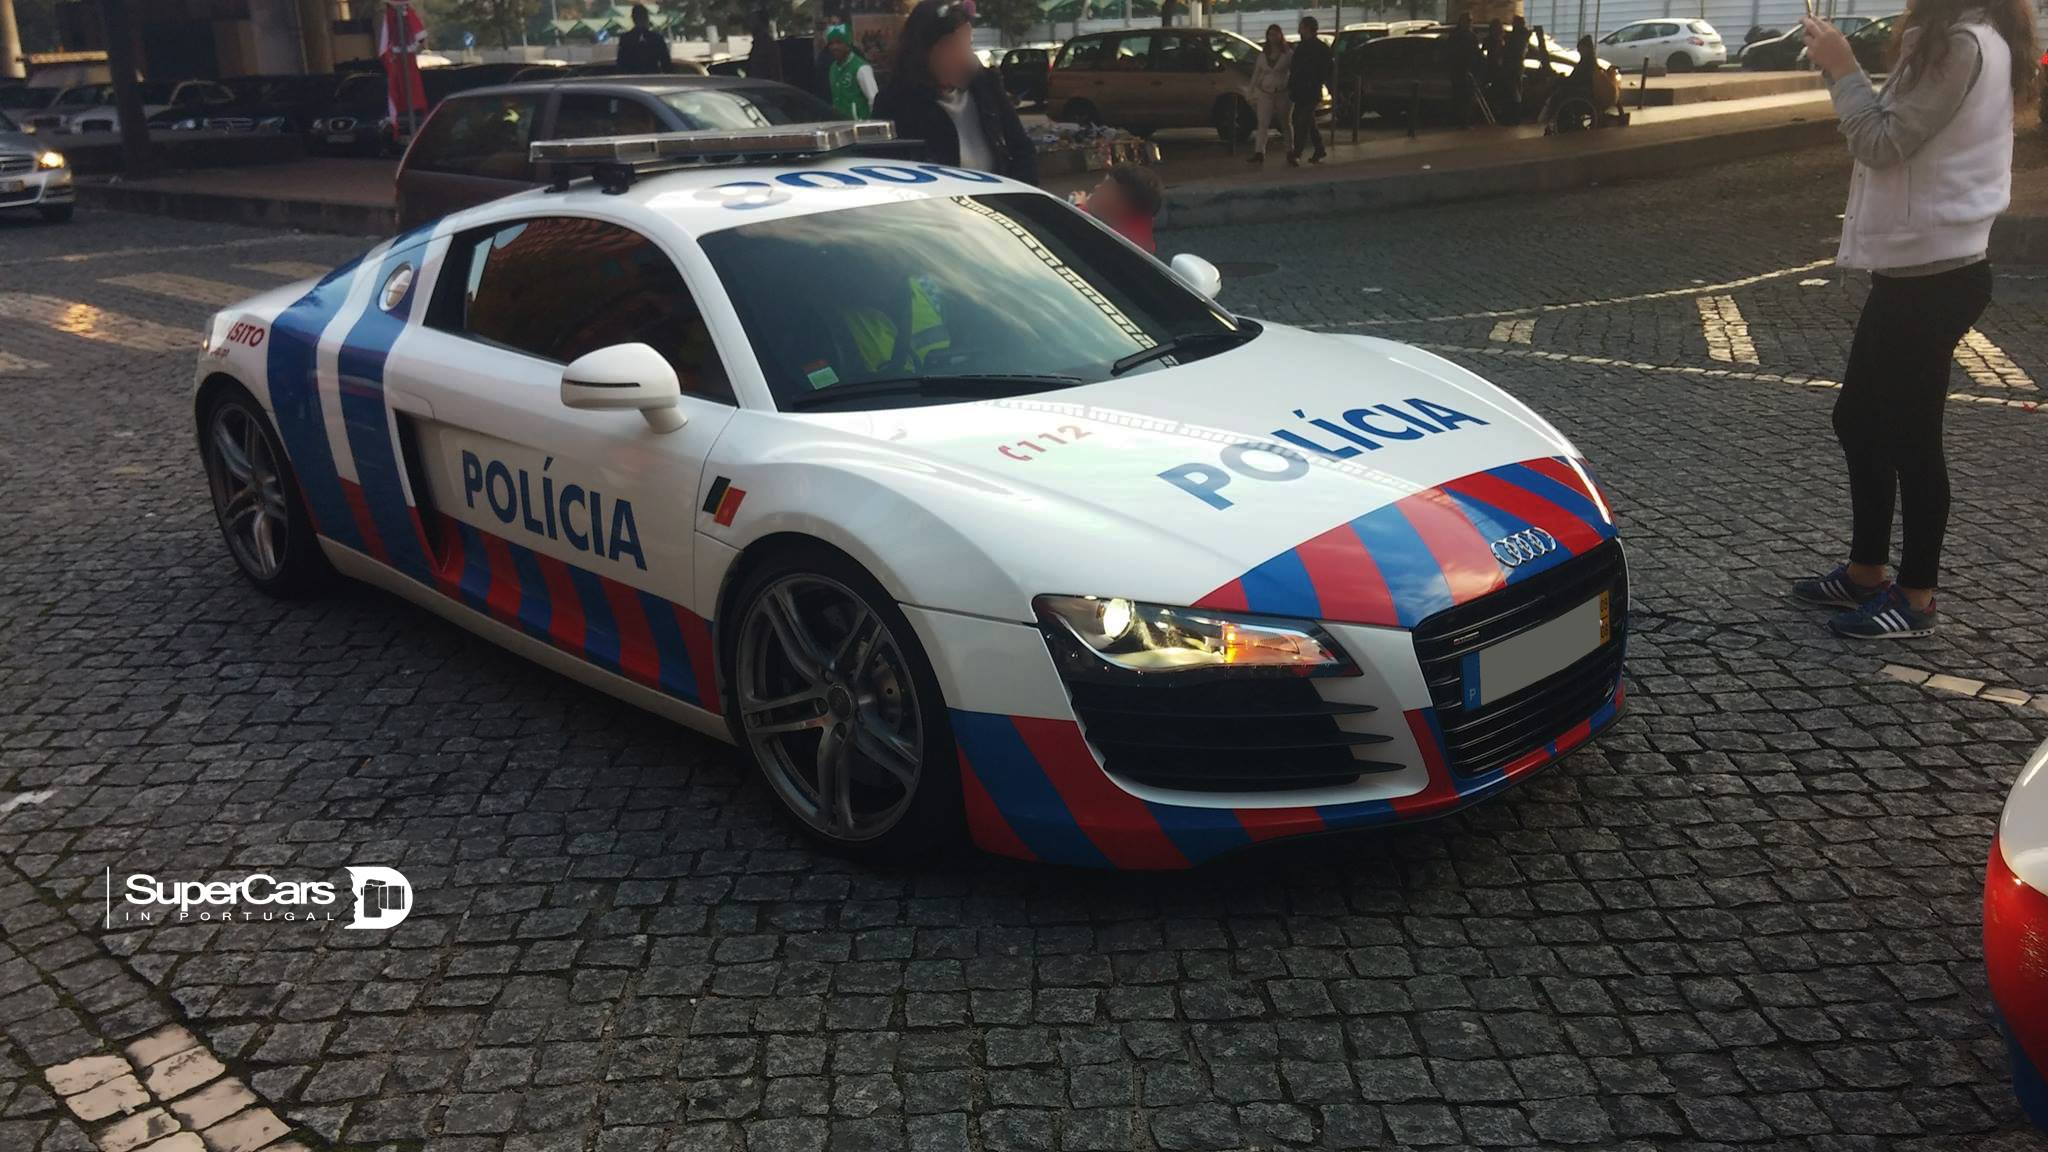 Best of police cars - Best Of Police Cars 8